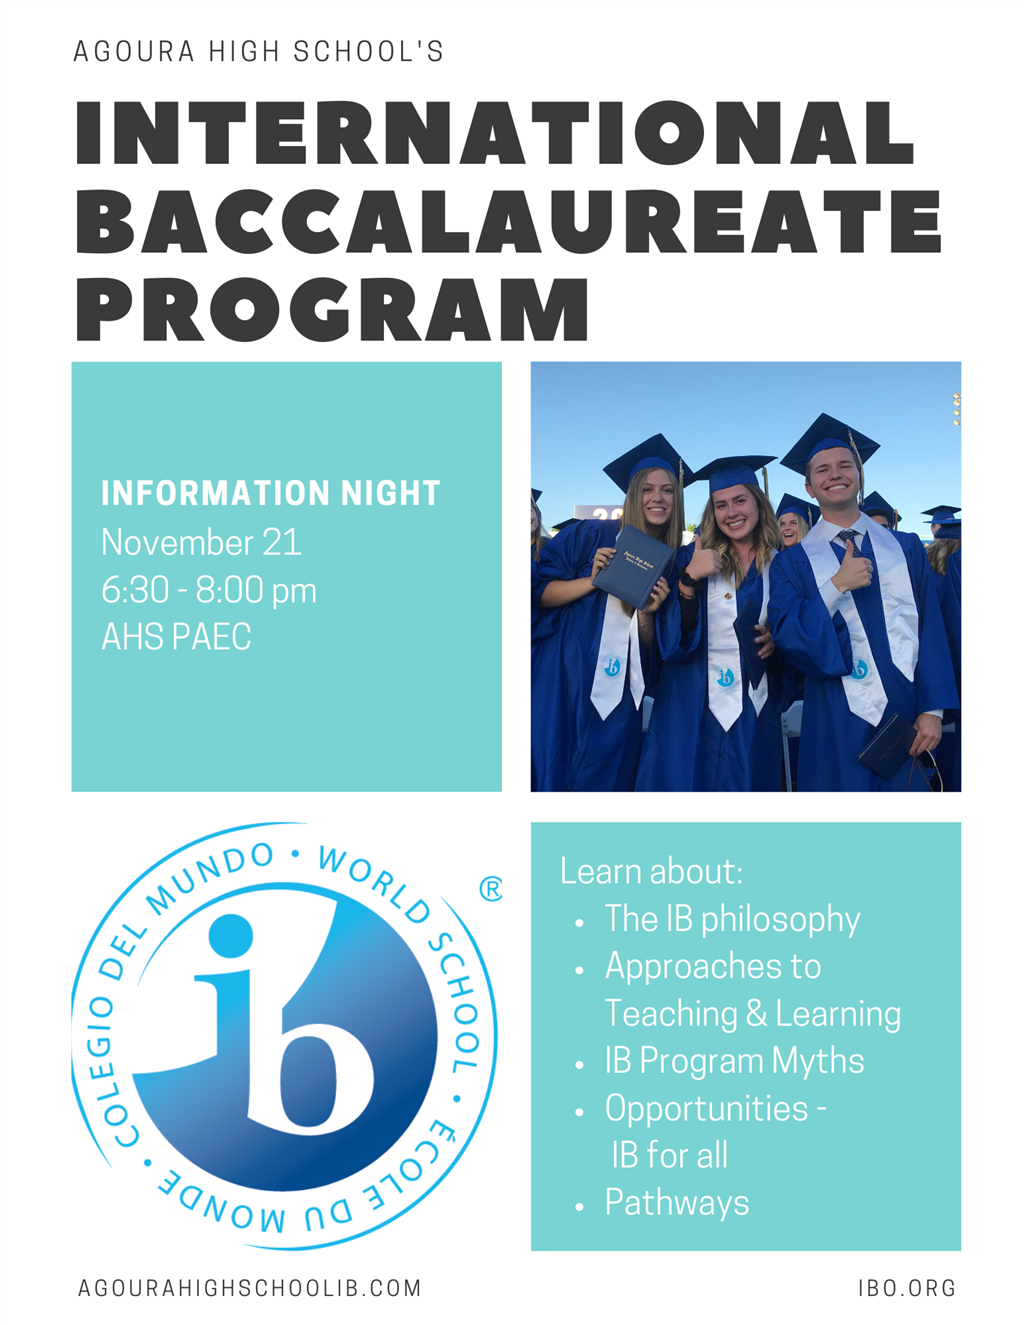 The IB Information Night to the AHS calendar and website? It's Thursday, 11/21 at 6:30pm.